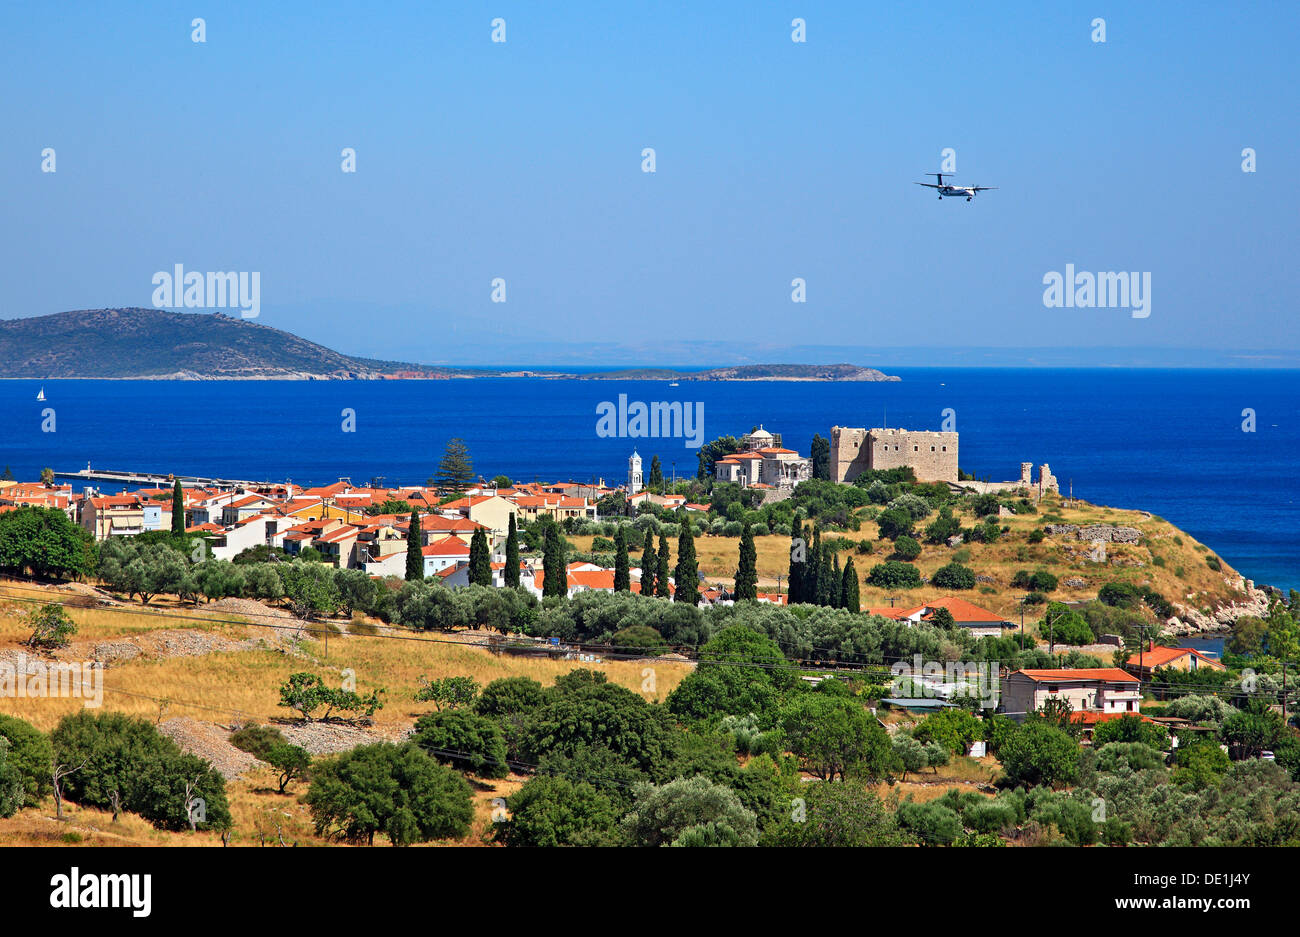 Panoramic view of Pythagorion town while an airplane is heading for landing at the nearby airport, Samos island, Stock Photo